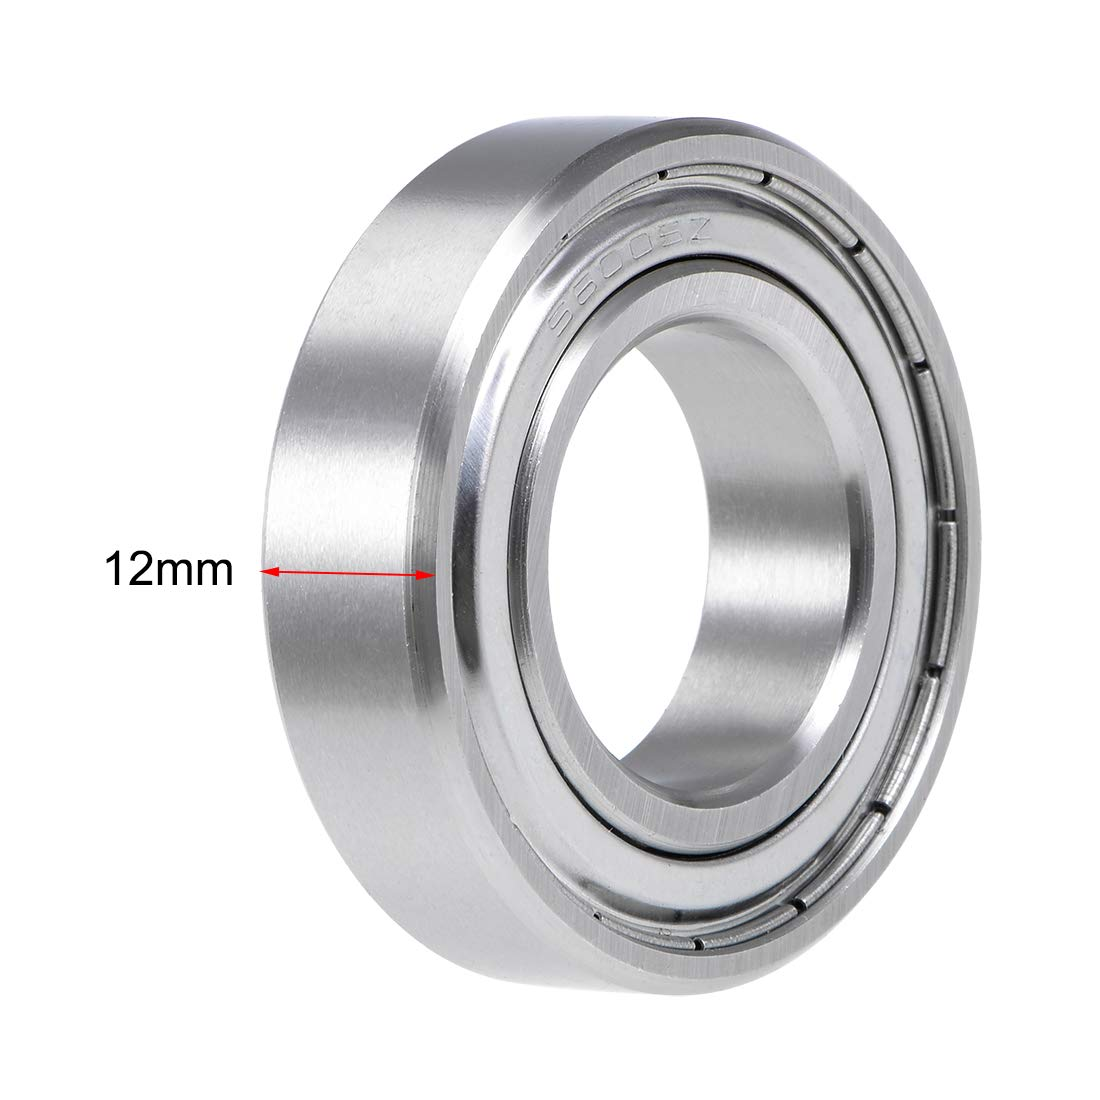 66 Coupling Outer Diameter:40 VXB Brand Japan MJC-40CSK-ERD 14mm to 9//16 inch Jaw-Type Flexible Coupling Coupling Bore 2 Diameter:9//16 inch Coupling Length